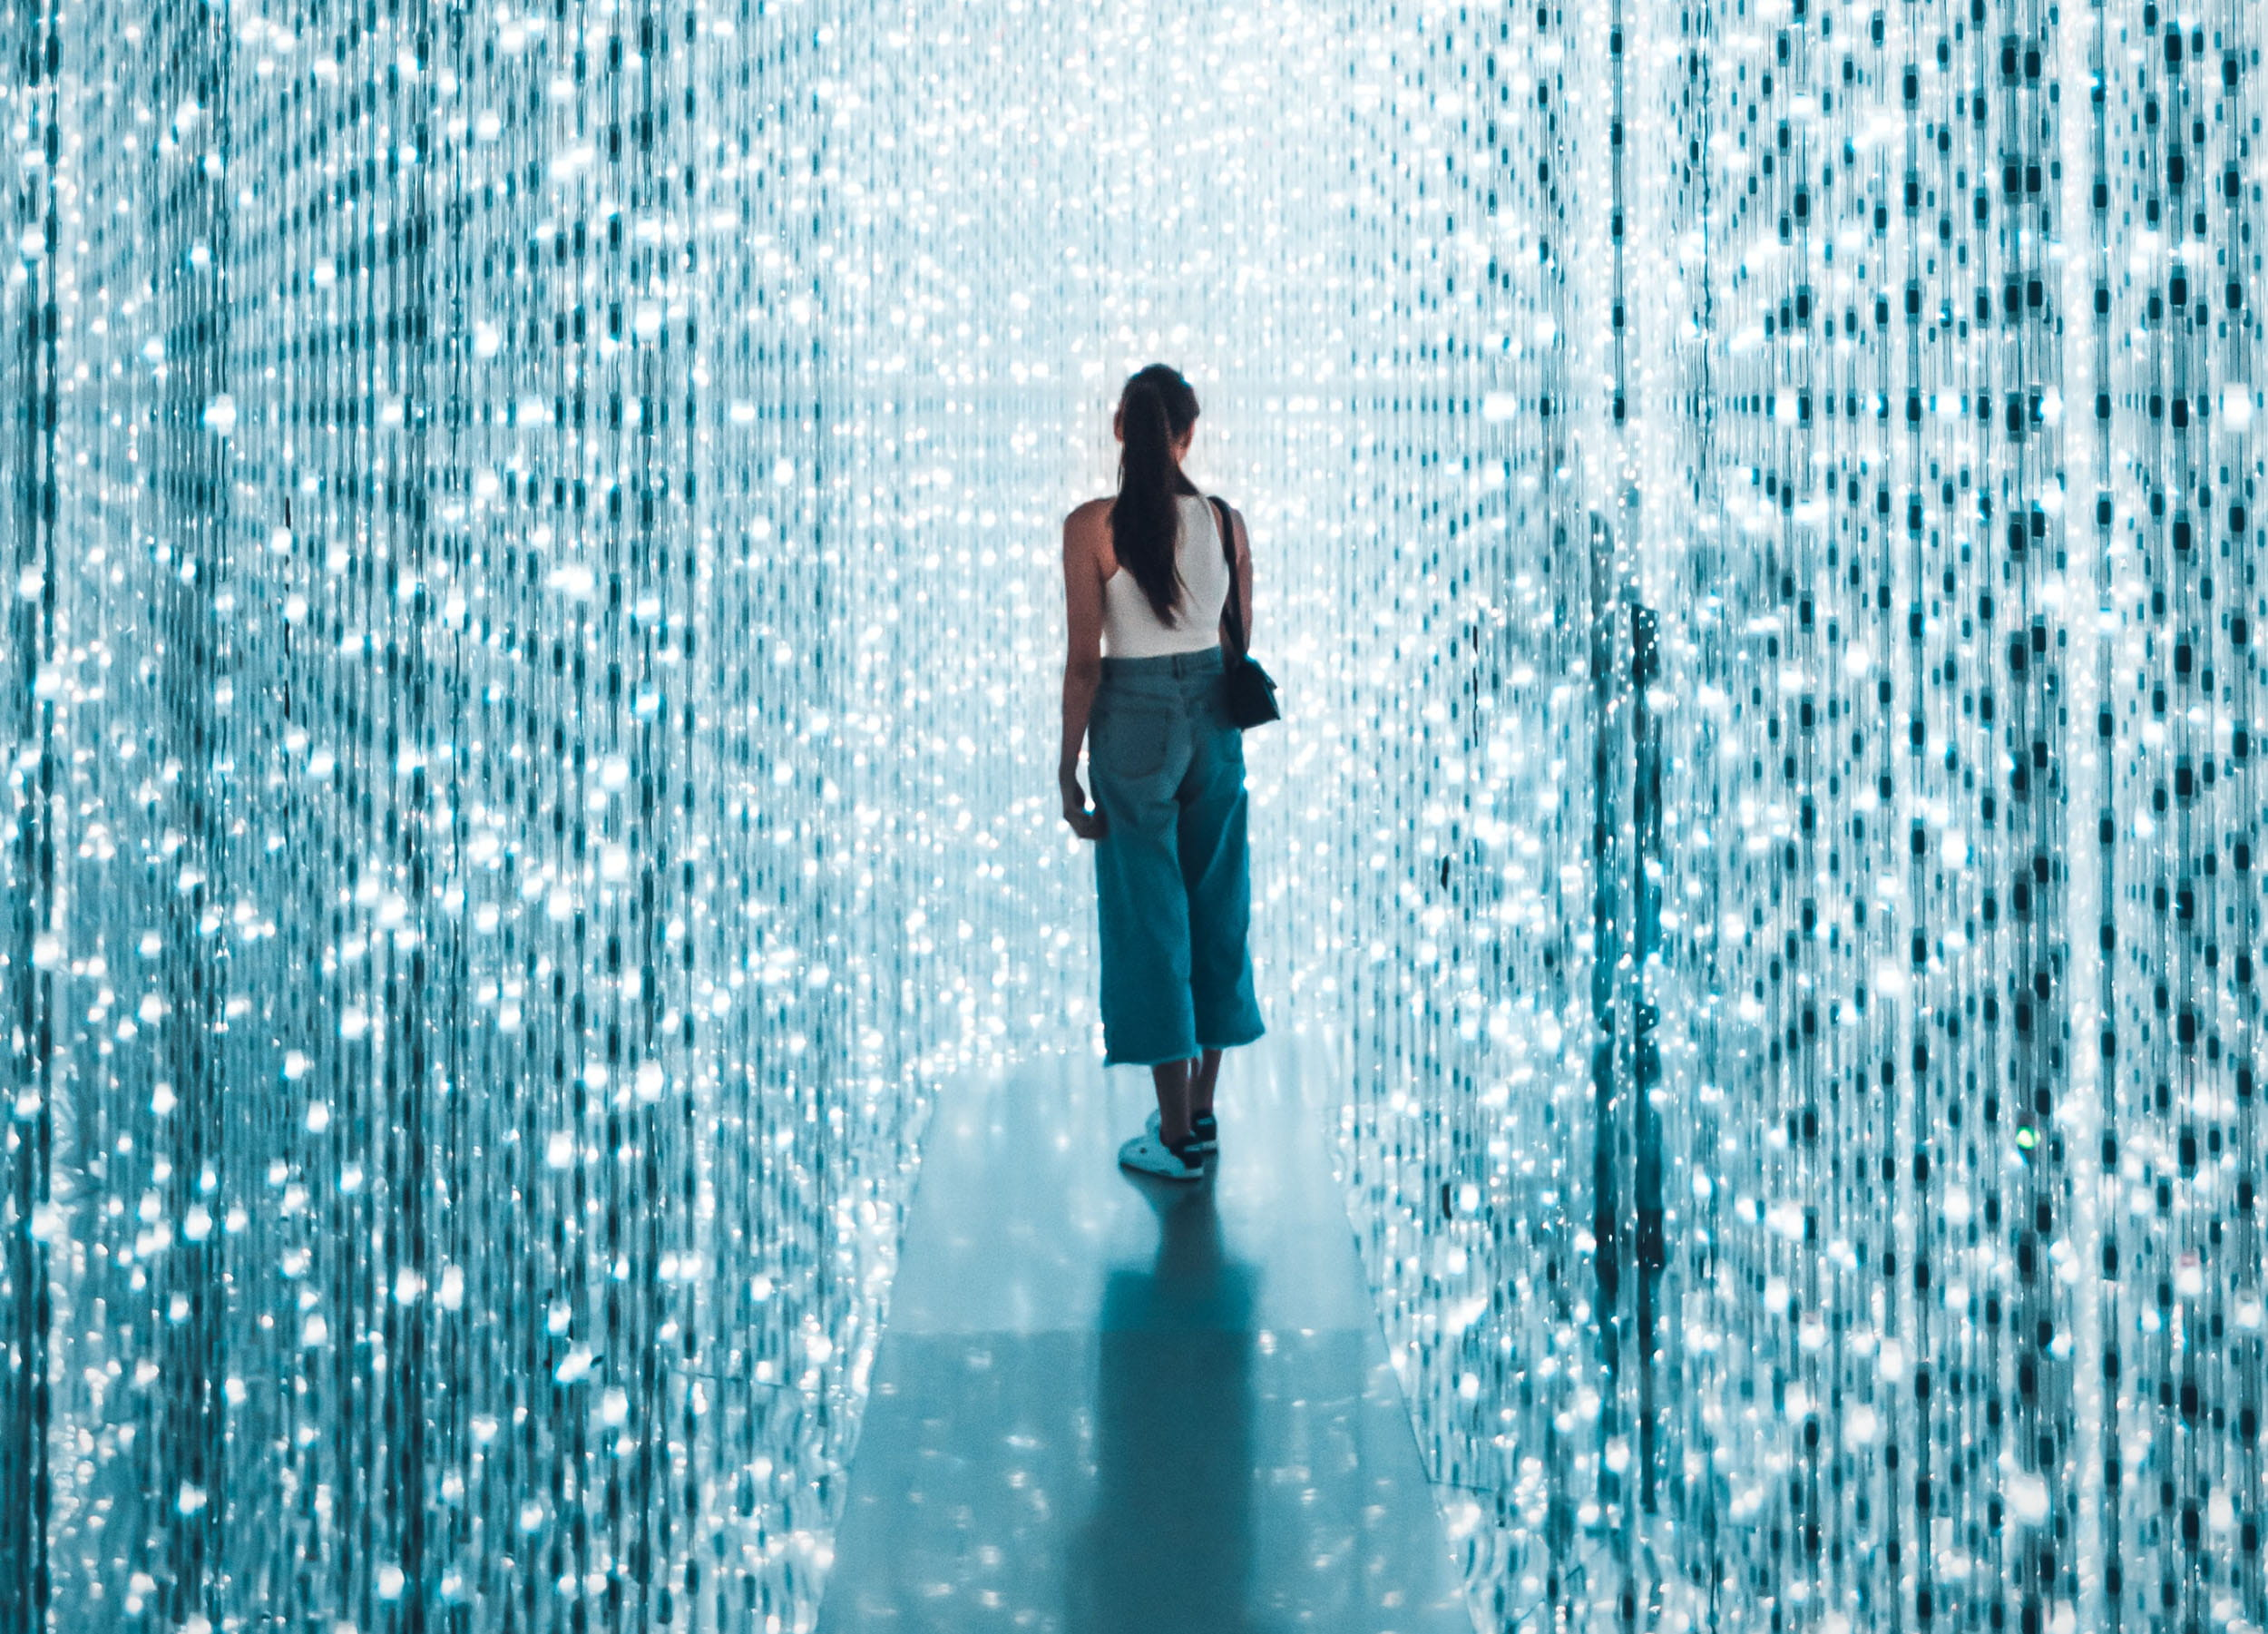 A woman standing on a small platform, surrounded by strings of blue and white lights running floor to ceiling.